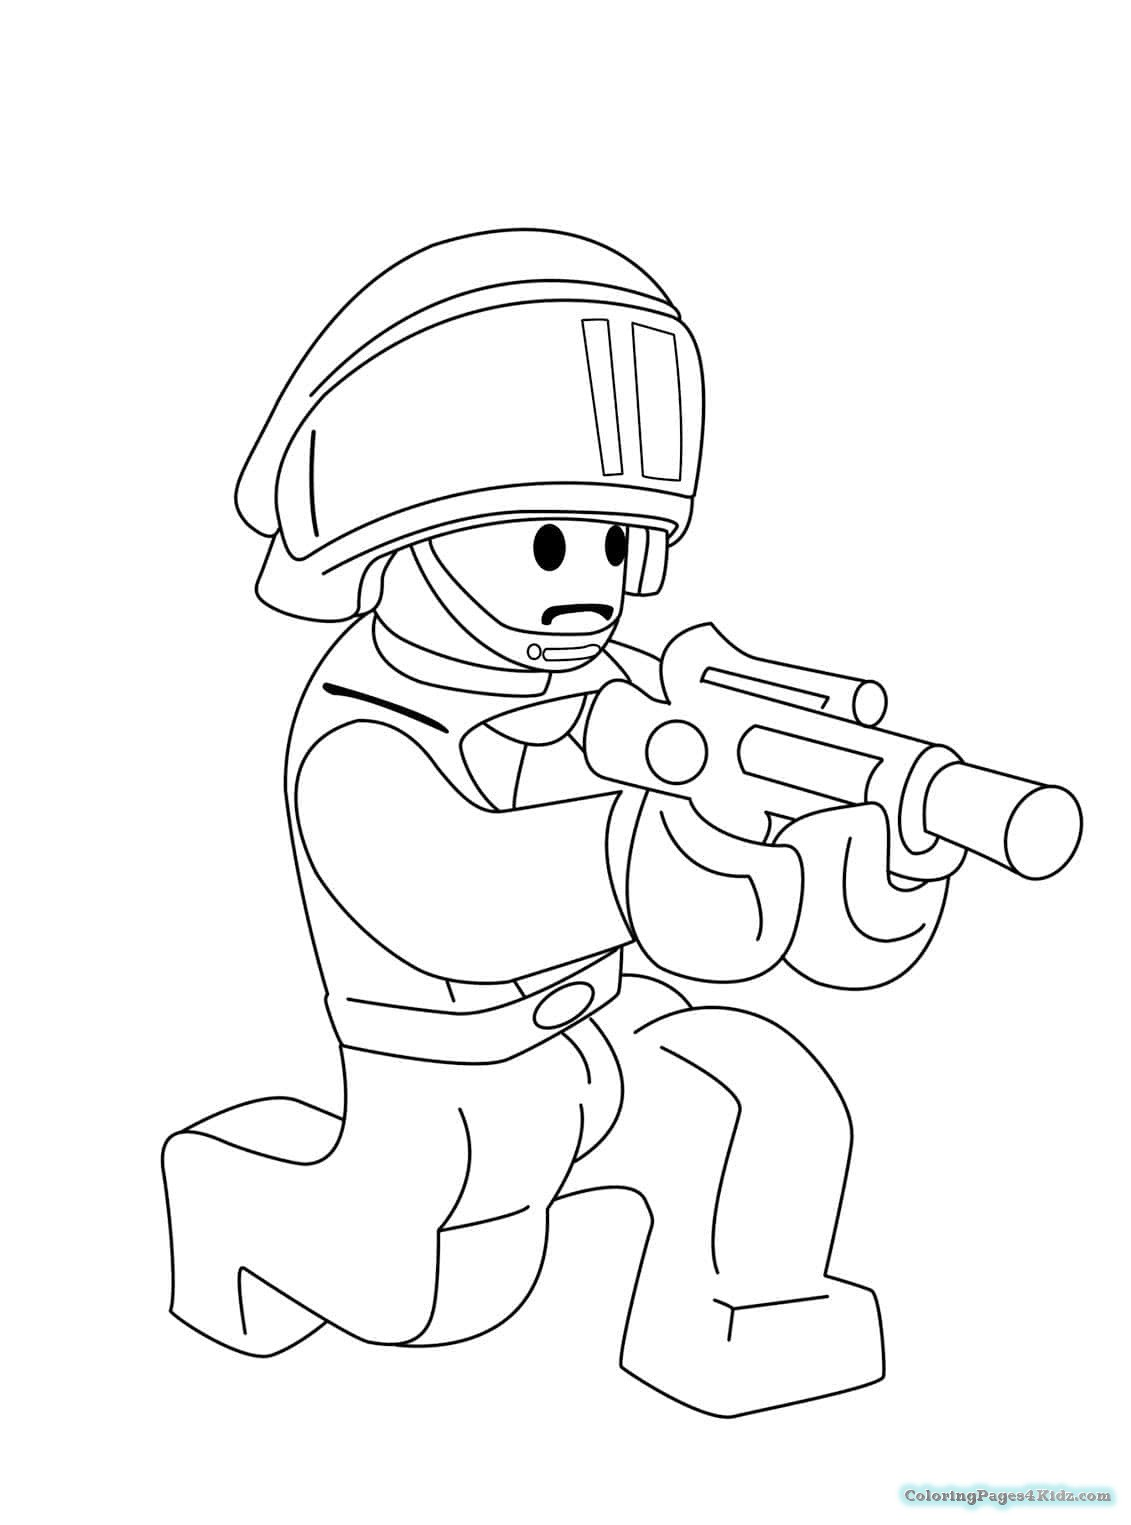 lego star wars pictures to color star wars coloring pages getcoloringpagescom lego pictures wars to star color